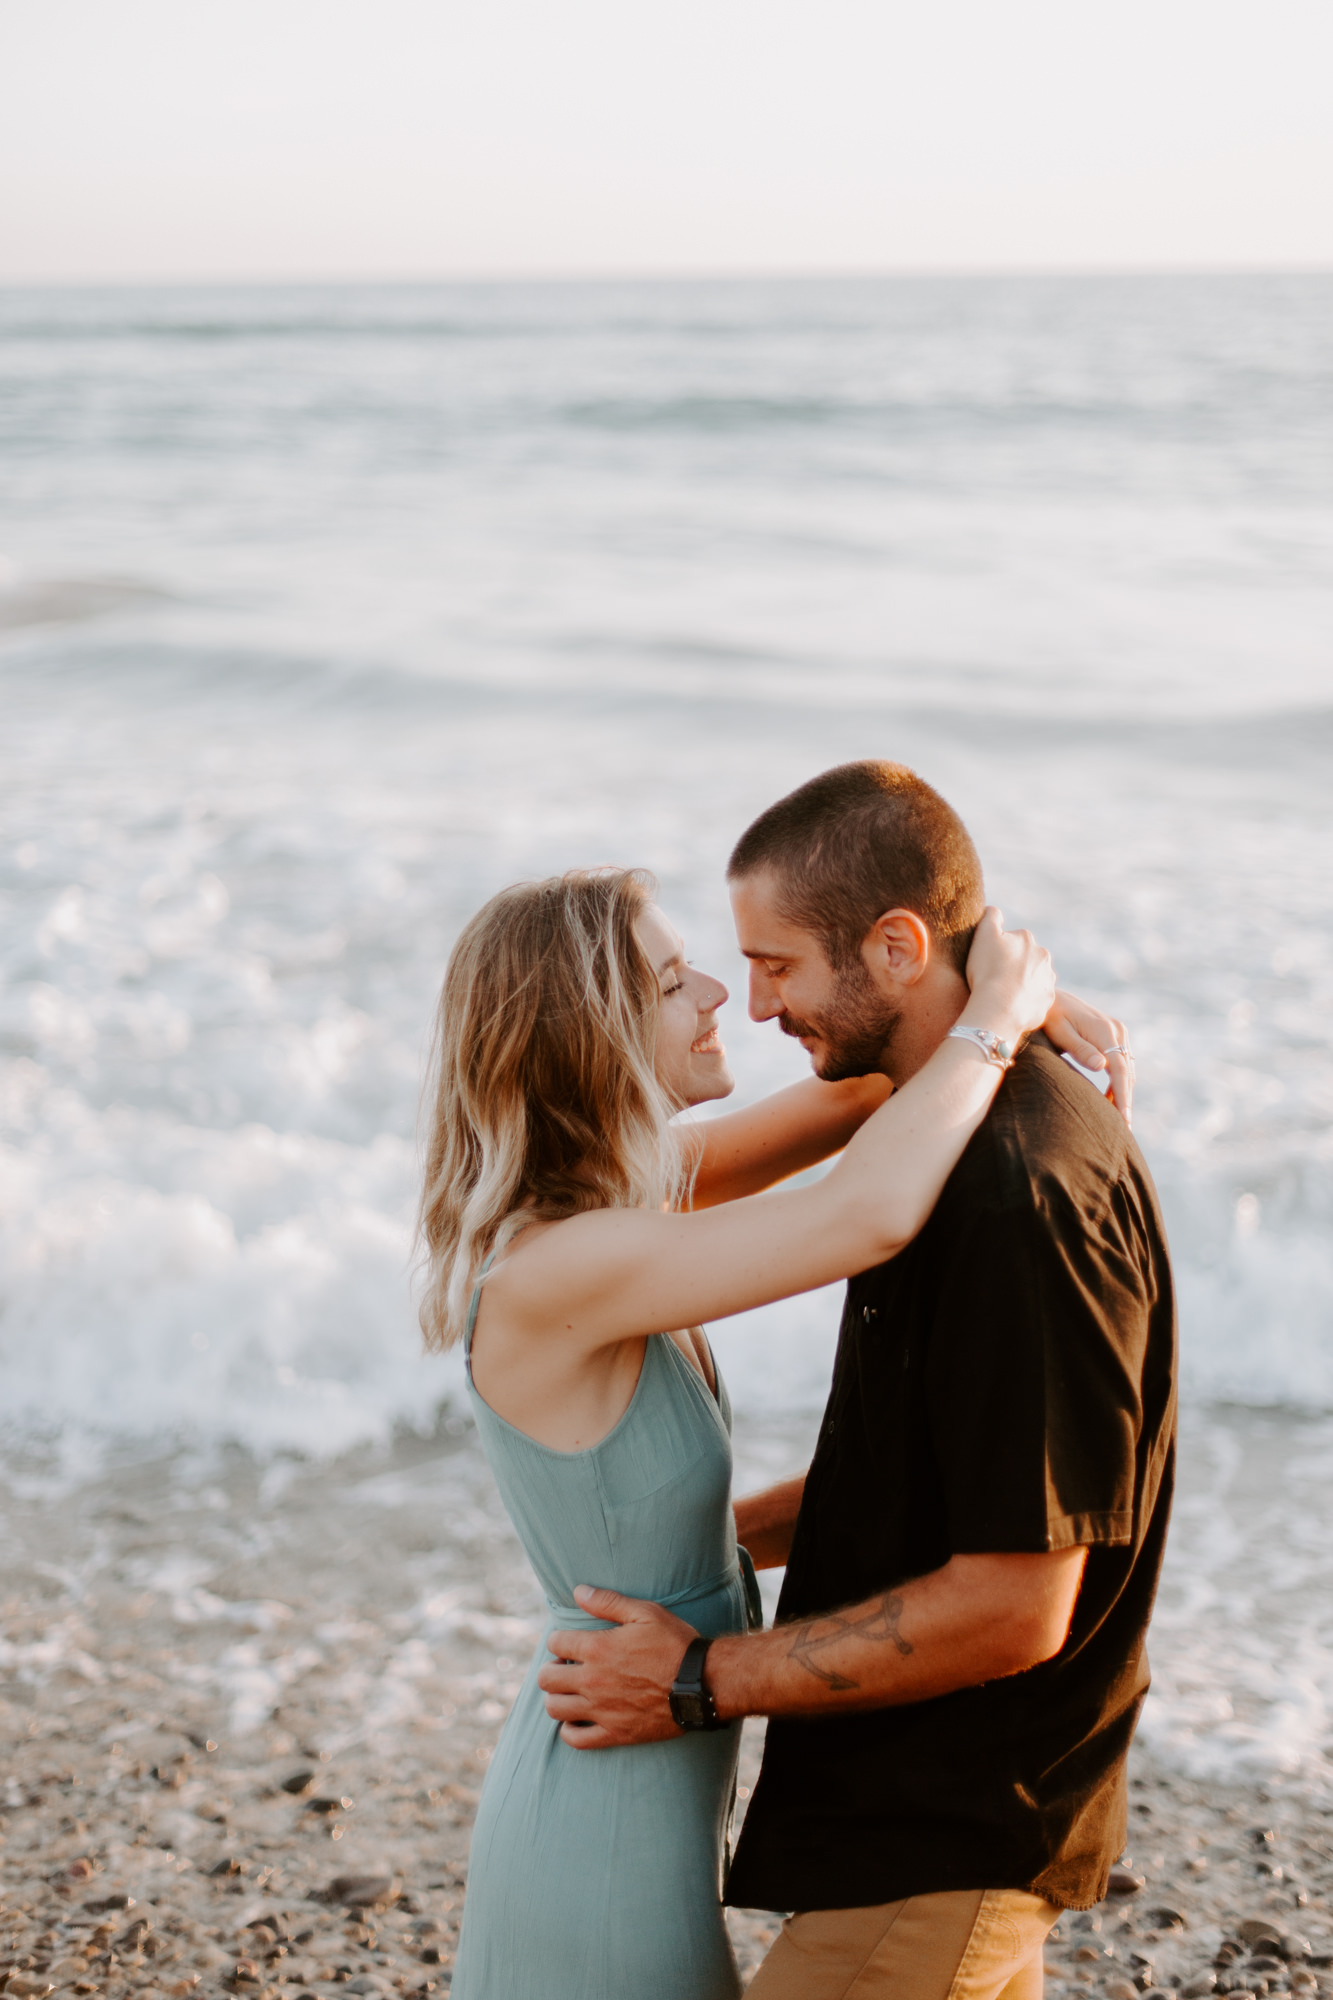 San Diego Engagement photography in home Oceanside Beach029.jpg